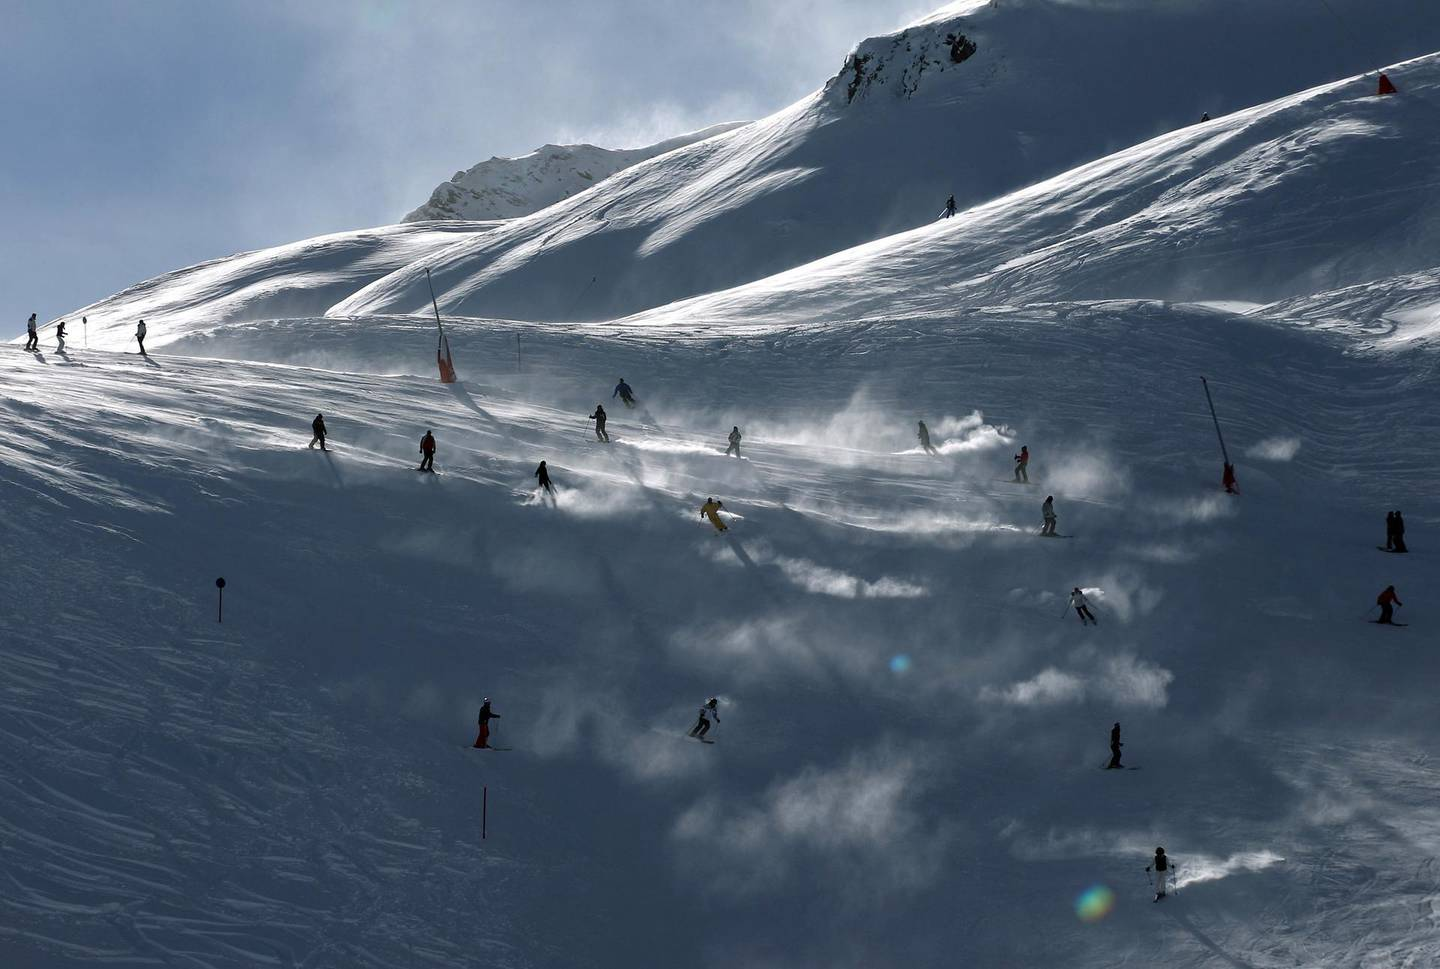 ISCHGL, AUSTRIA - NOVEMBER 27: Skiers are pictured during the winter season opening on November 27, 2010 in Ischgl, Austria. Ischgl has more then 230 kilometers of ski slopes and is one of Austria's biggest mountain resorts. (Photo by Miguel Villagran/Getty Images)